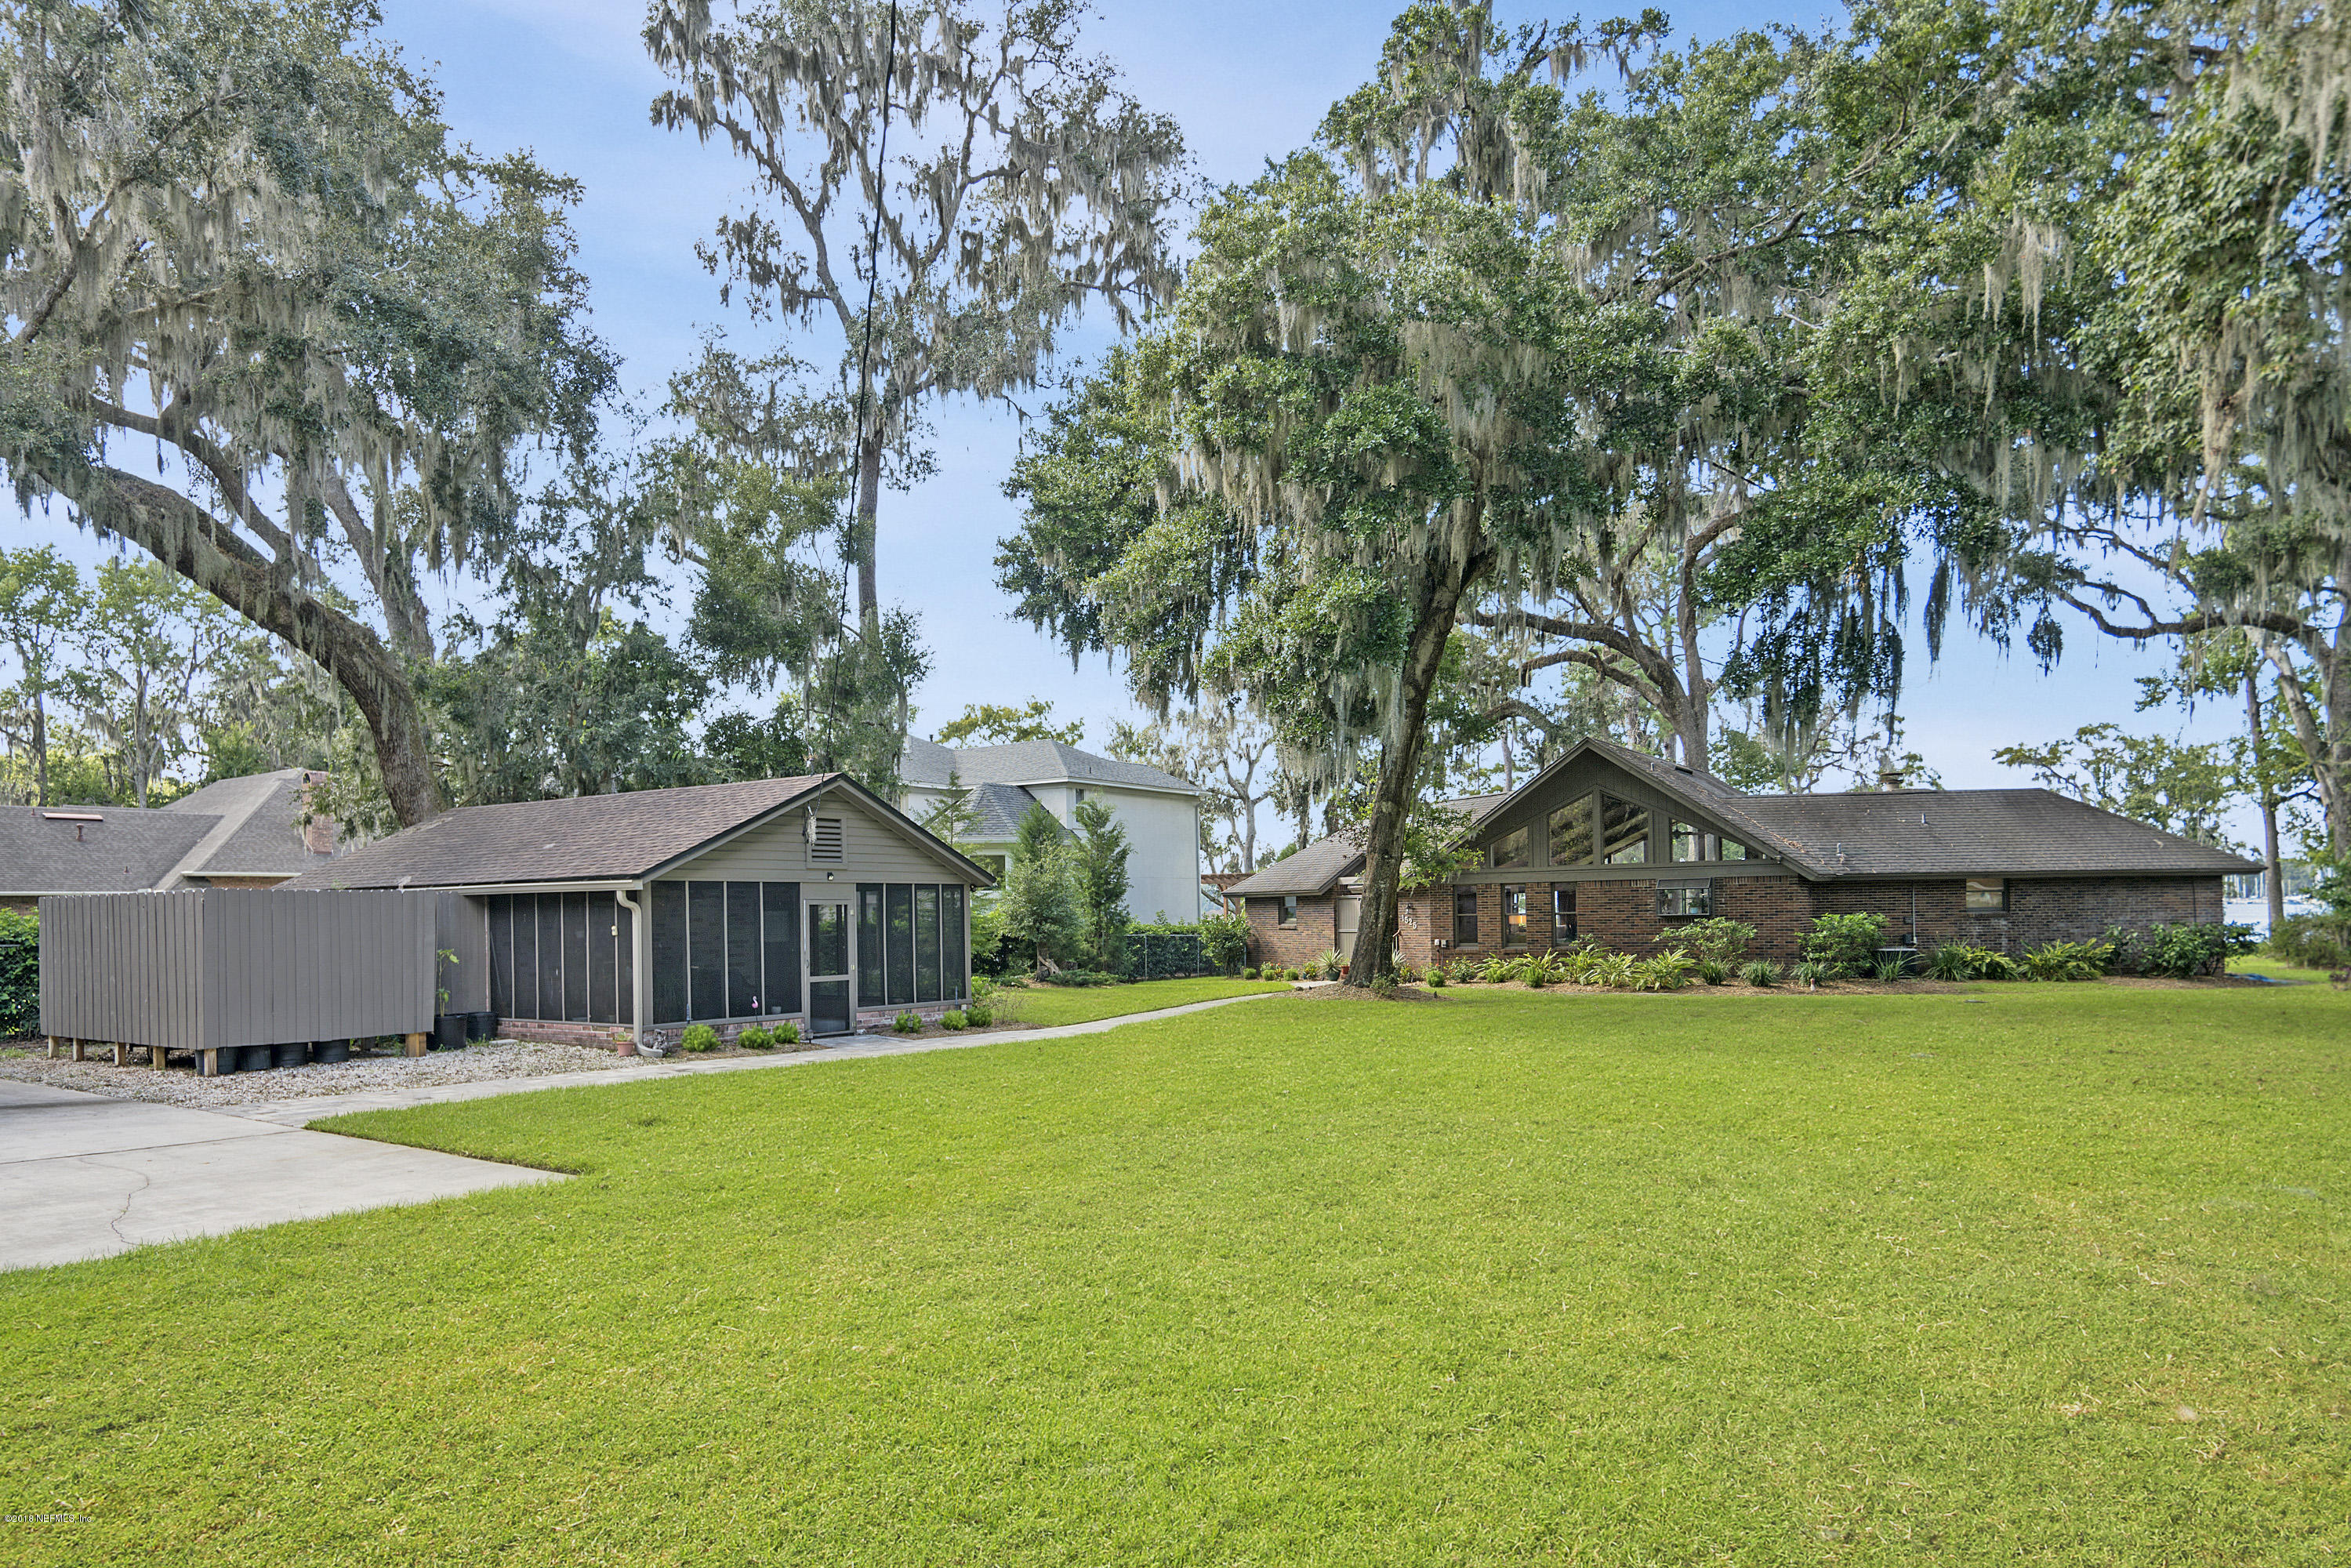 1525 WENTWORTH, JACKSONVILLE, FLORIDA 32259, 2 Bedrooms Bedrooms, ,2 BathroomsBathrooms,Residential - single family,For sale,WENTWORTH,959625